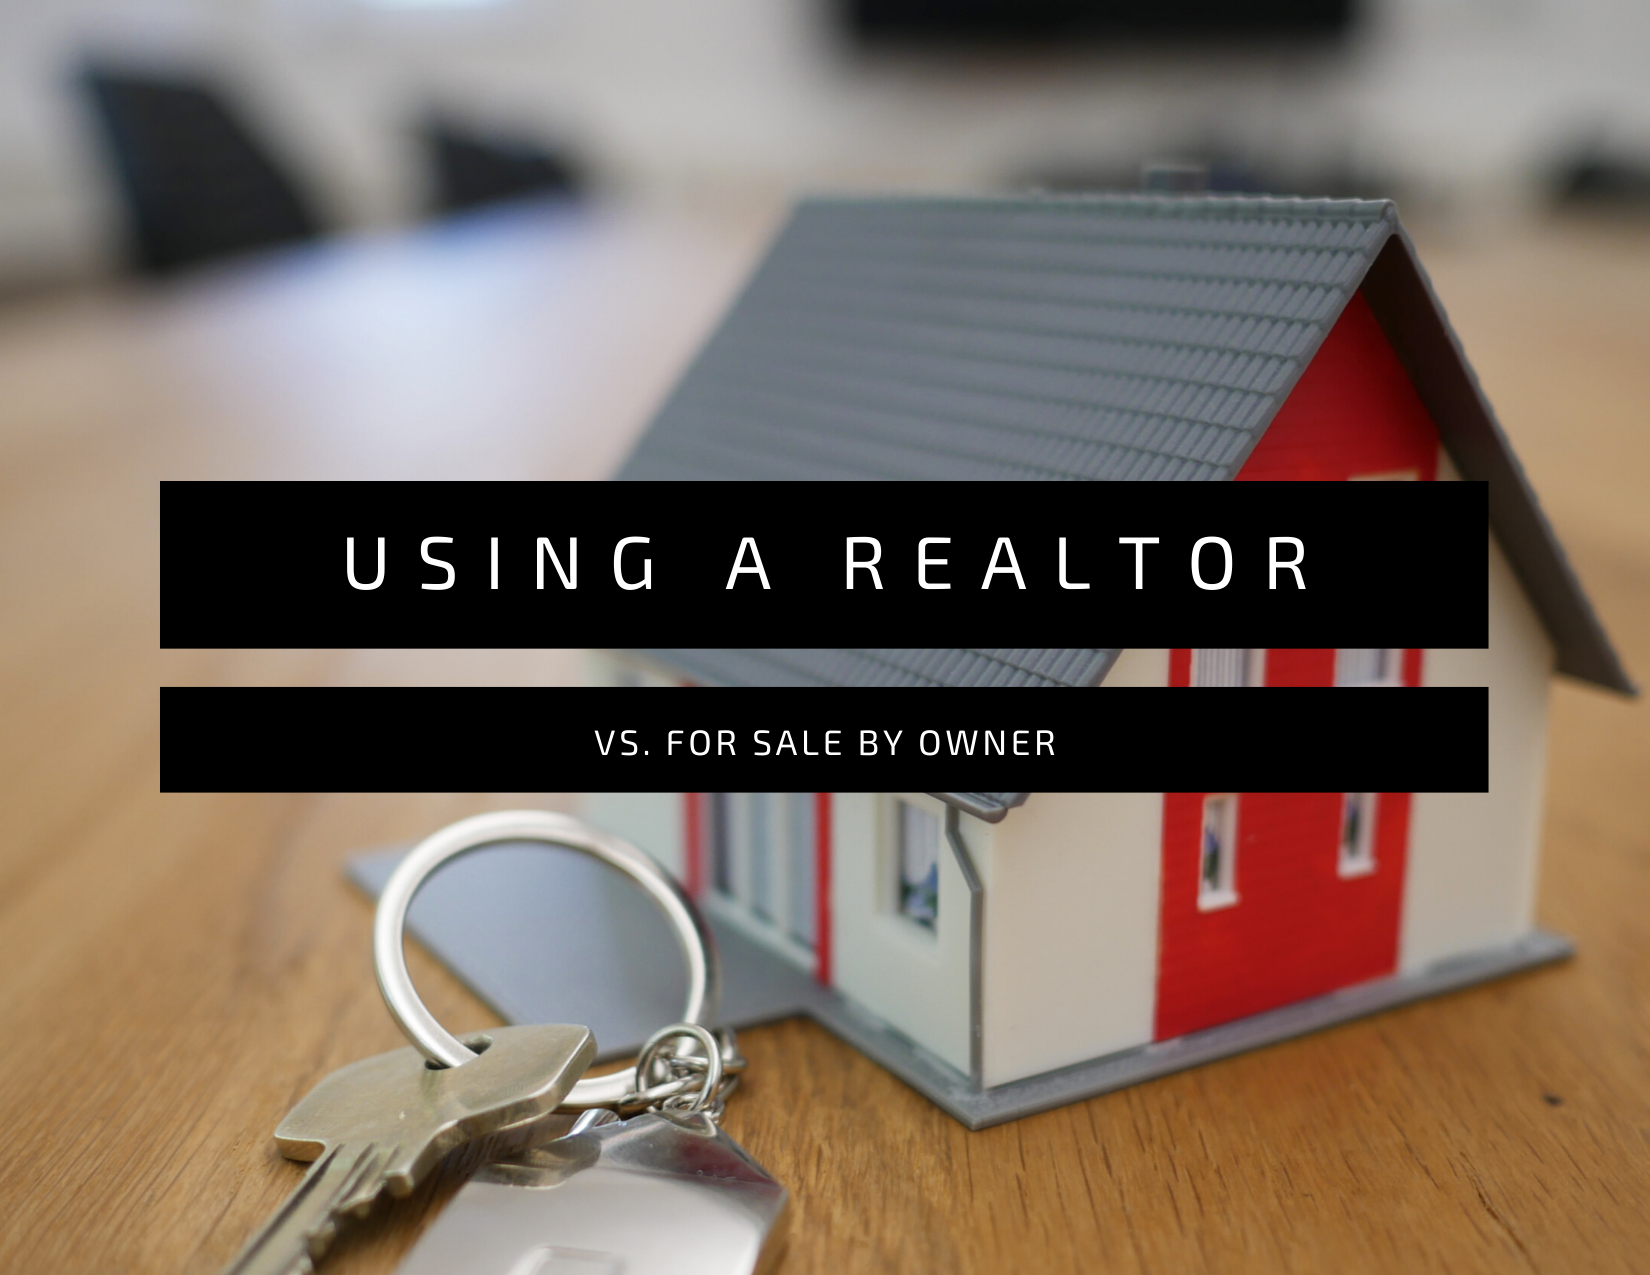 Using a Realtor vs. For Sale Buy Owner